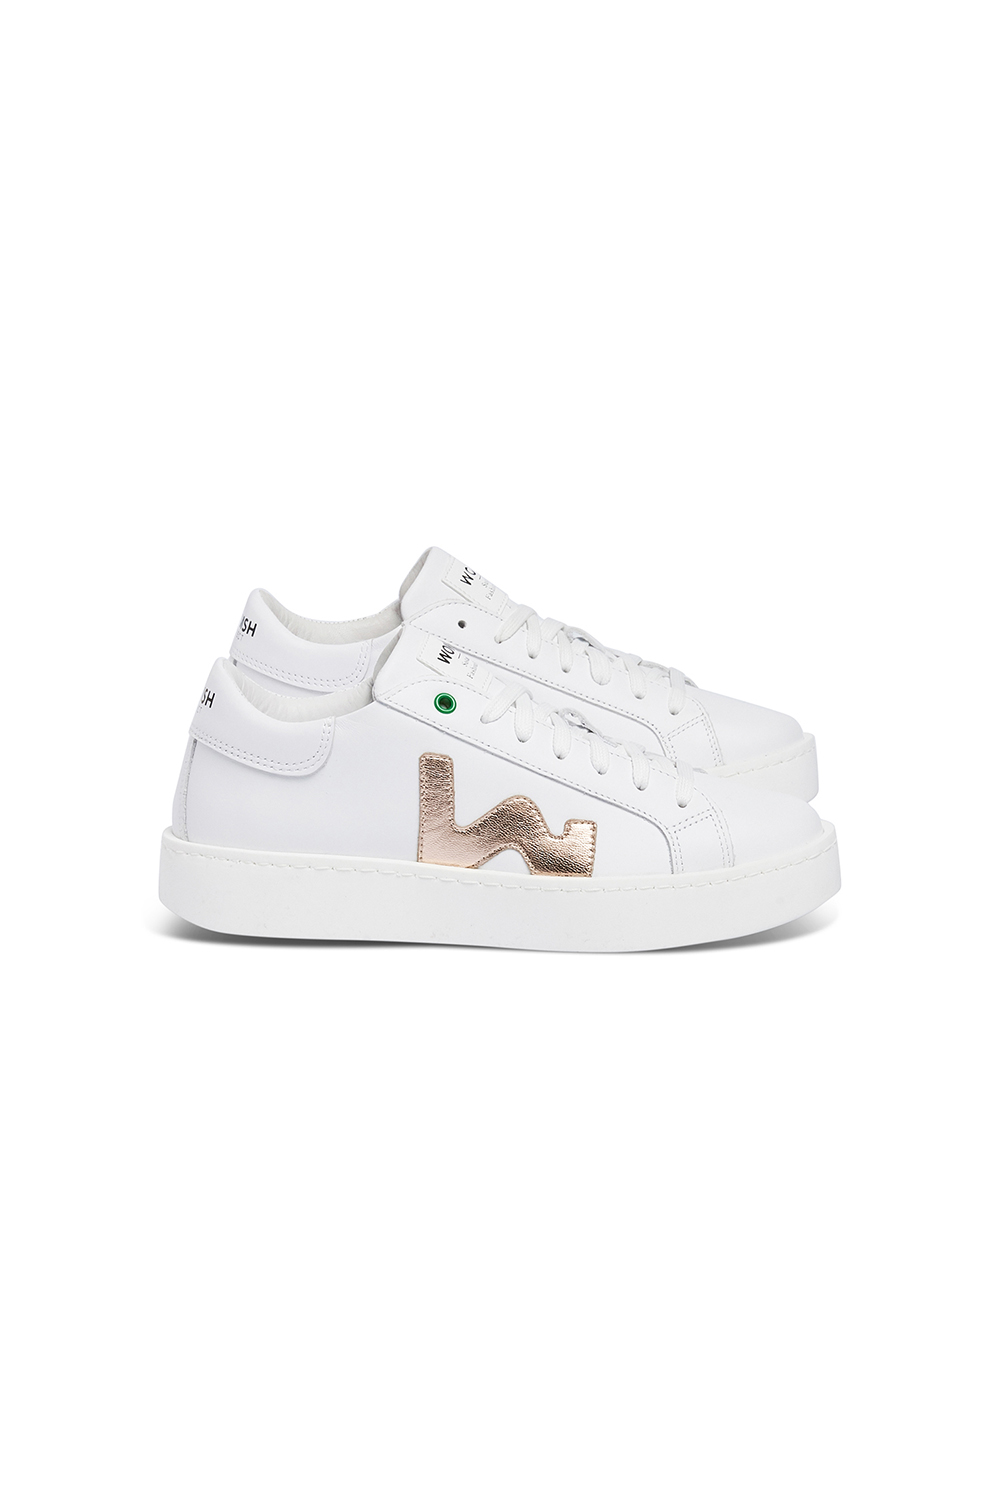 WOMSH Sneakers CONCEPT in white and gold leather